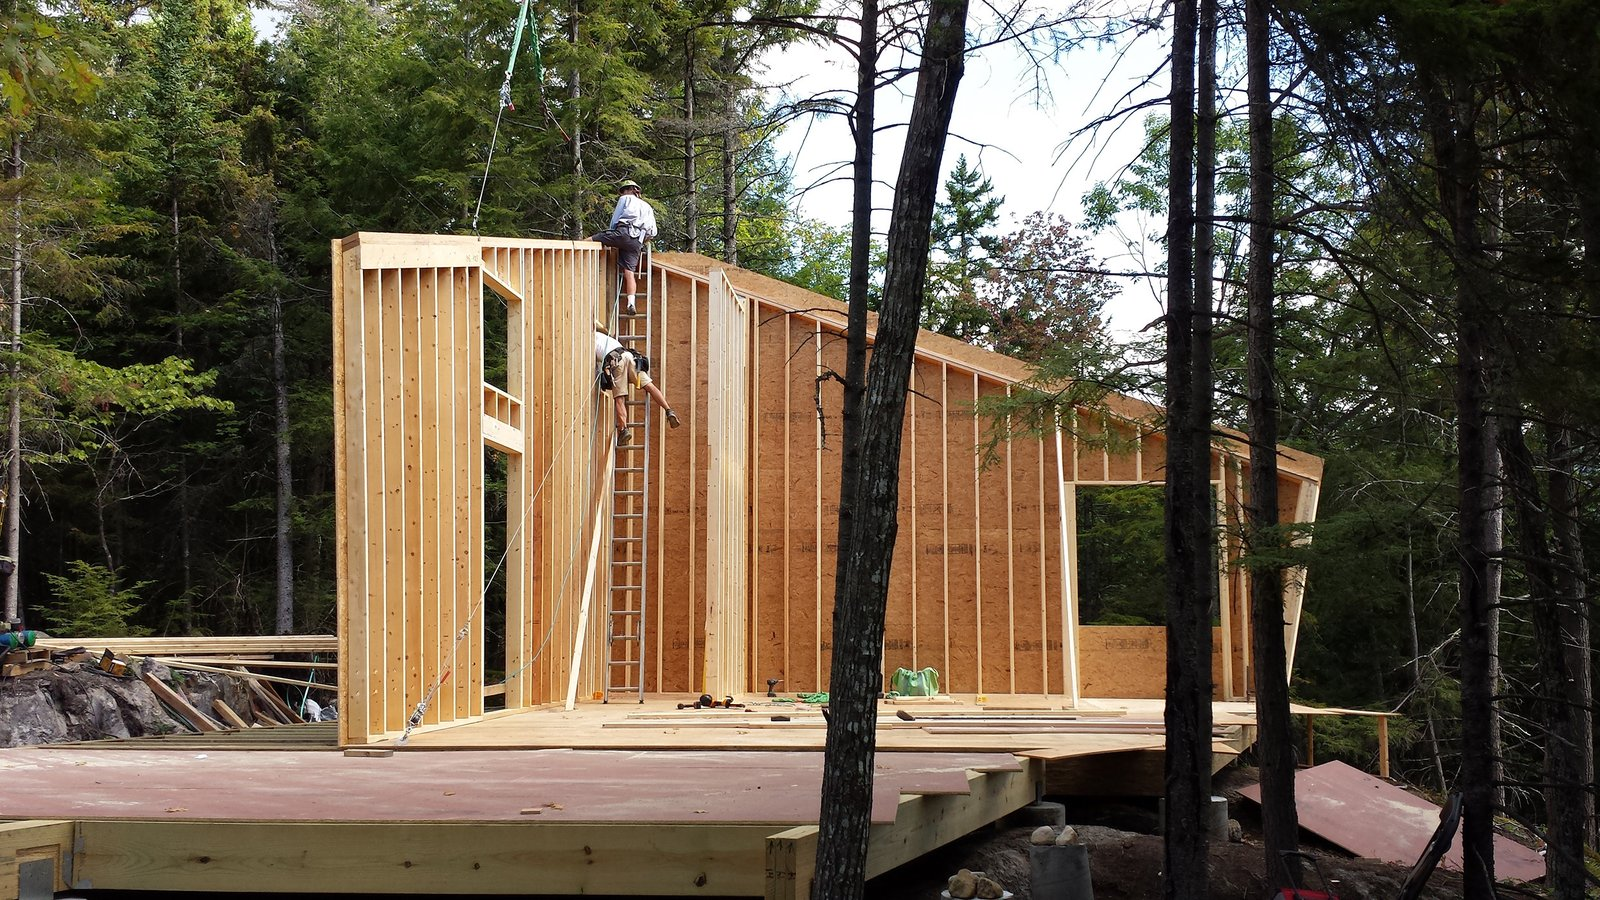 Photo 9 of 18 in A Prefab Cabin in New Hampshire Is a Magnificent Mountain Retreat